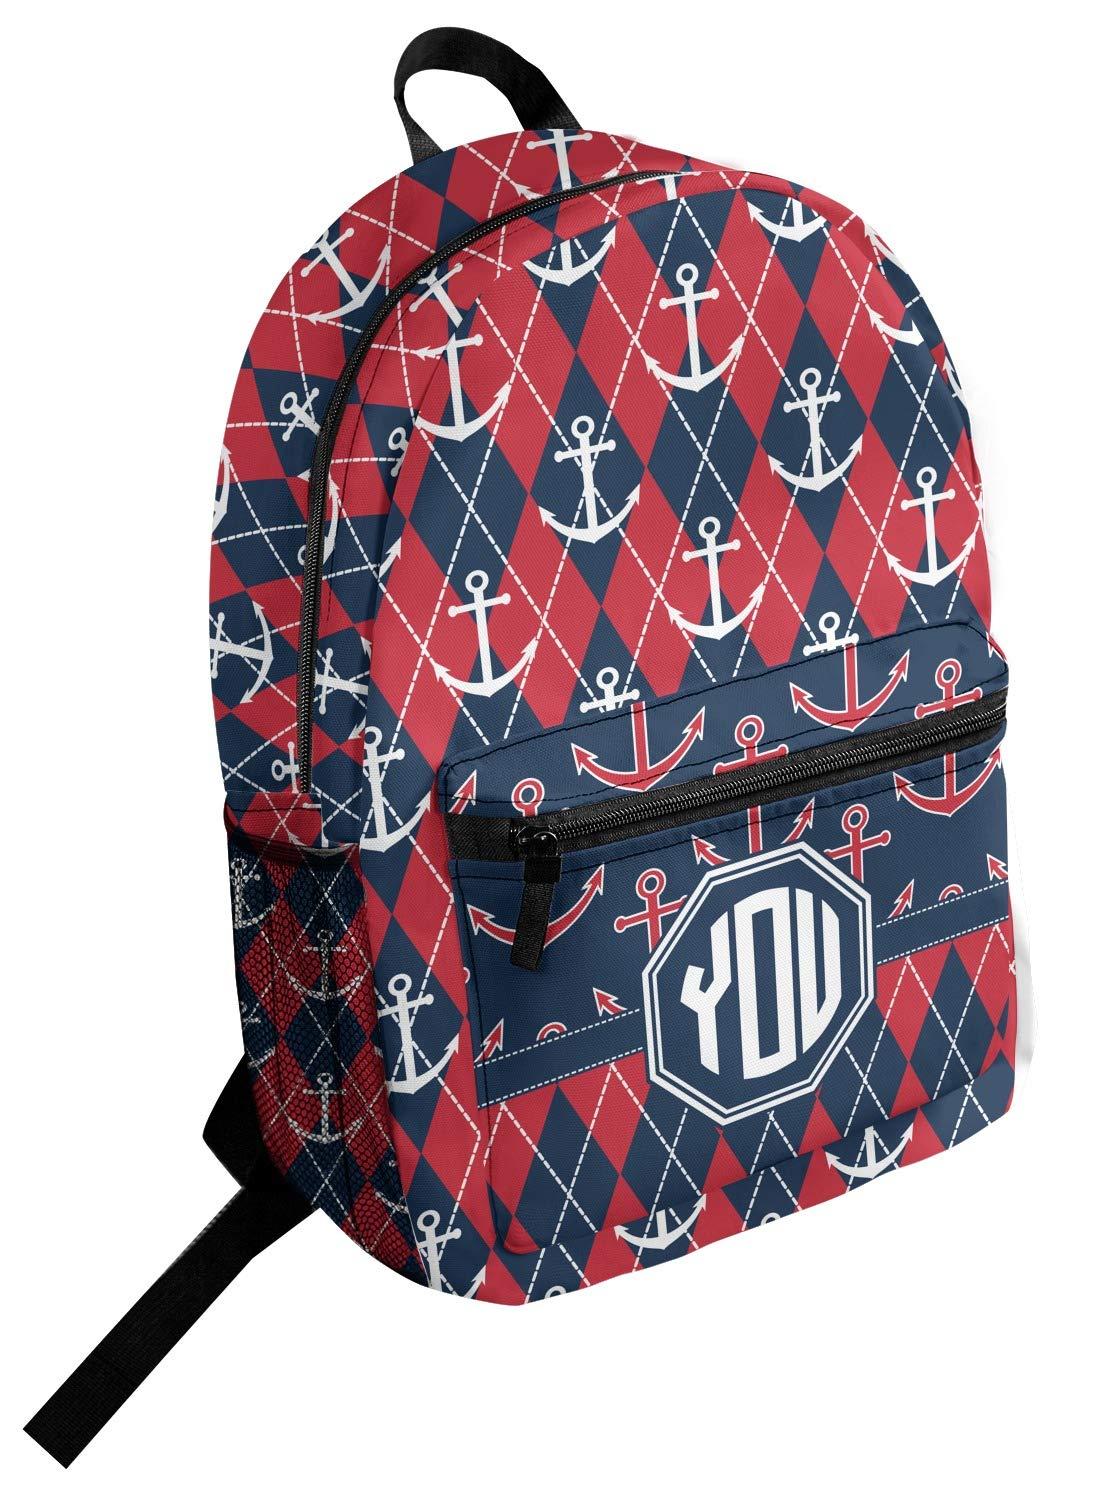 Anchors /& Argyle Student Backpack Personalized